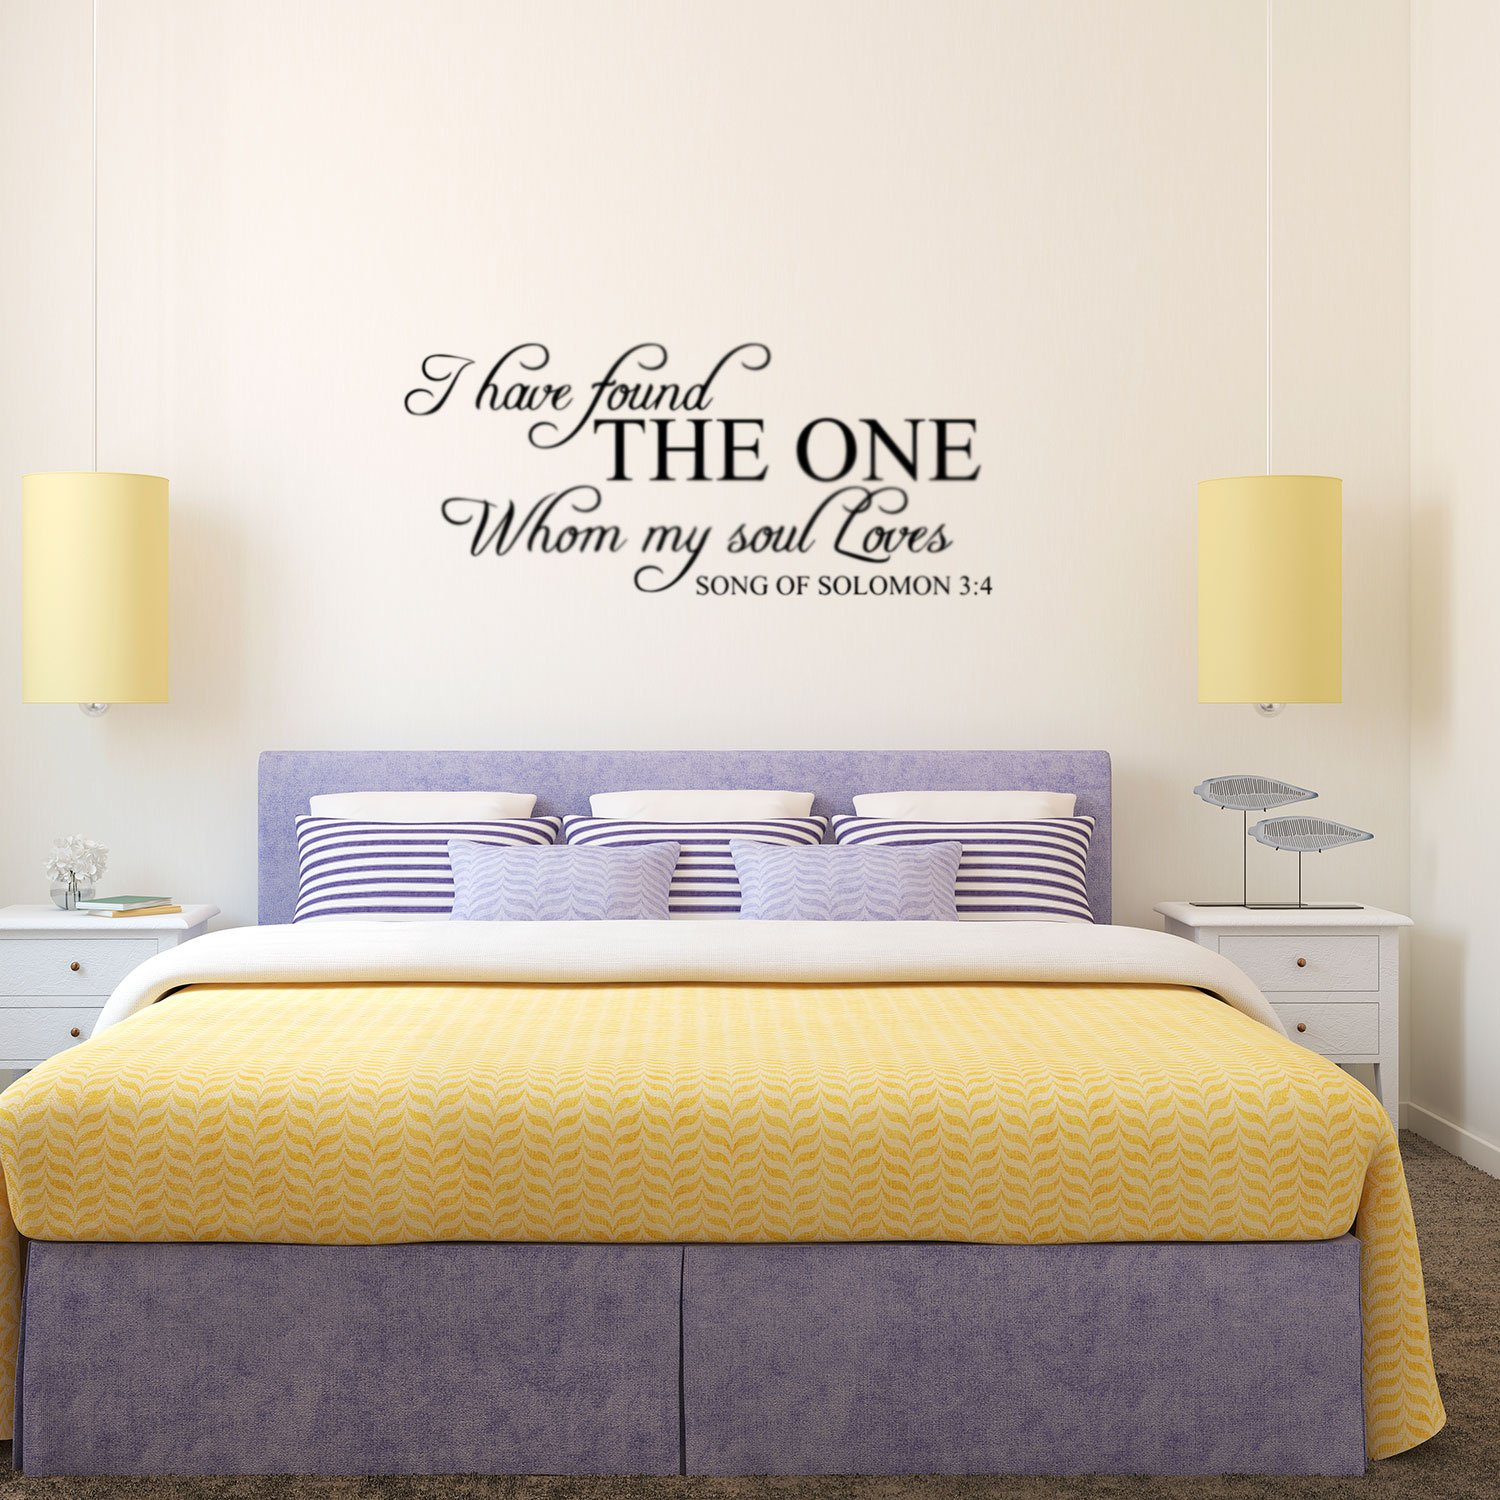 Song of Solomon 3:4 I Have Found My Soul - Wall Decal Vinyl - 13'' x 28'' - Religious Vinyl Wall Art - Christian Wall Decoration - Love Quote Bedroom Decor